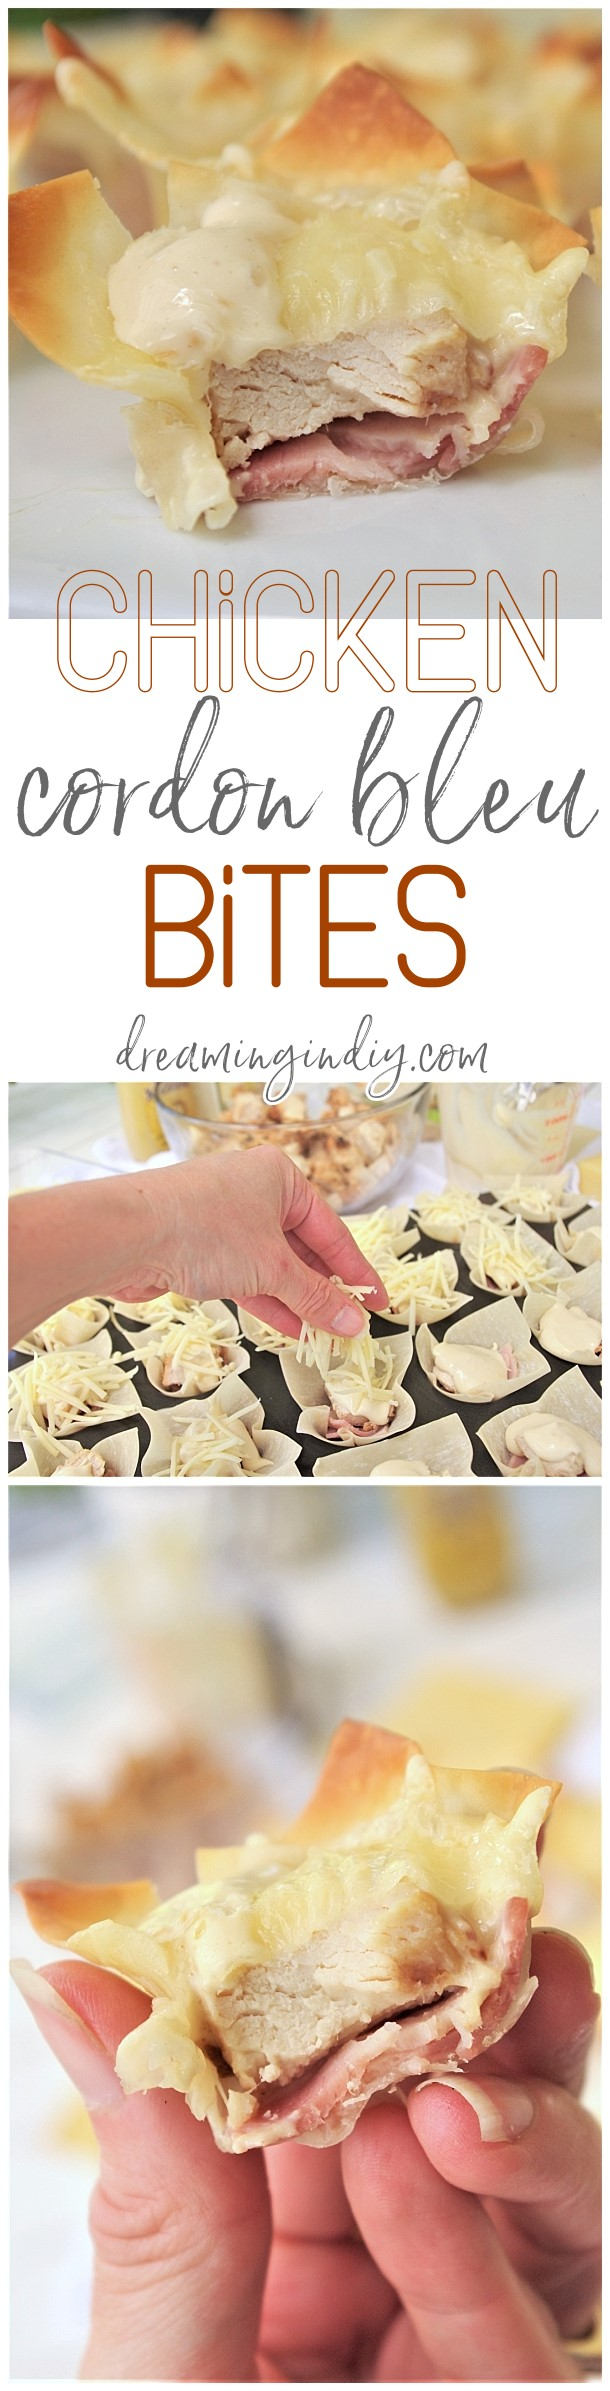 Chicken Cordon Bleu Cups Appetizer Recipe - tailgating fan favorite party finger foods! So easy and delicious. Perfect for parties and celebrations of any kind. via Dreaming in DIY